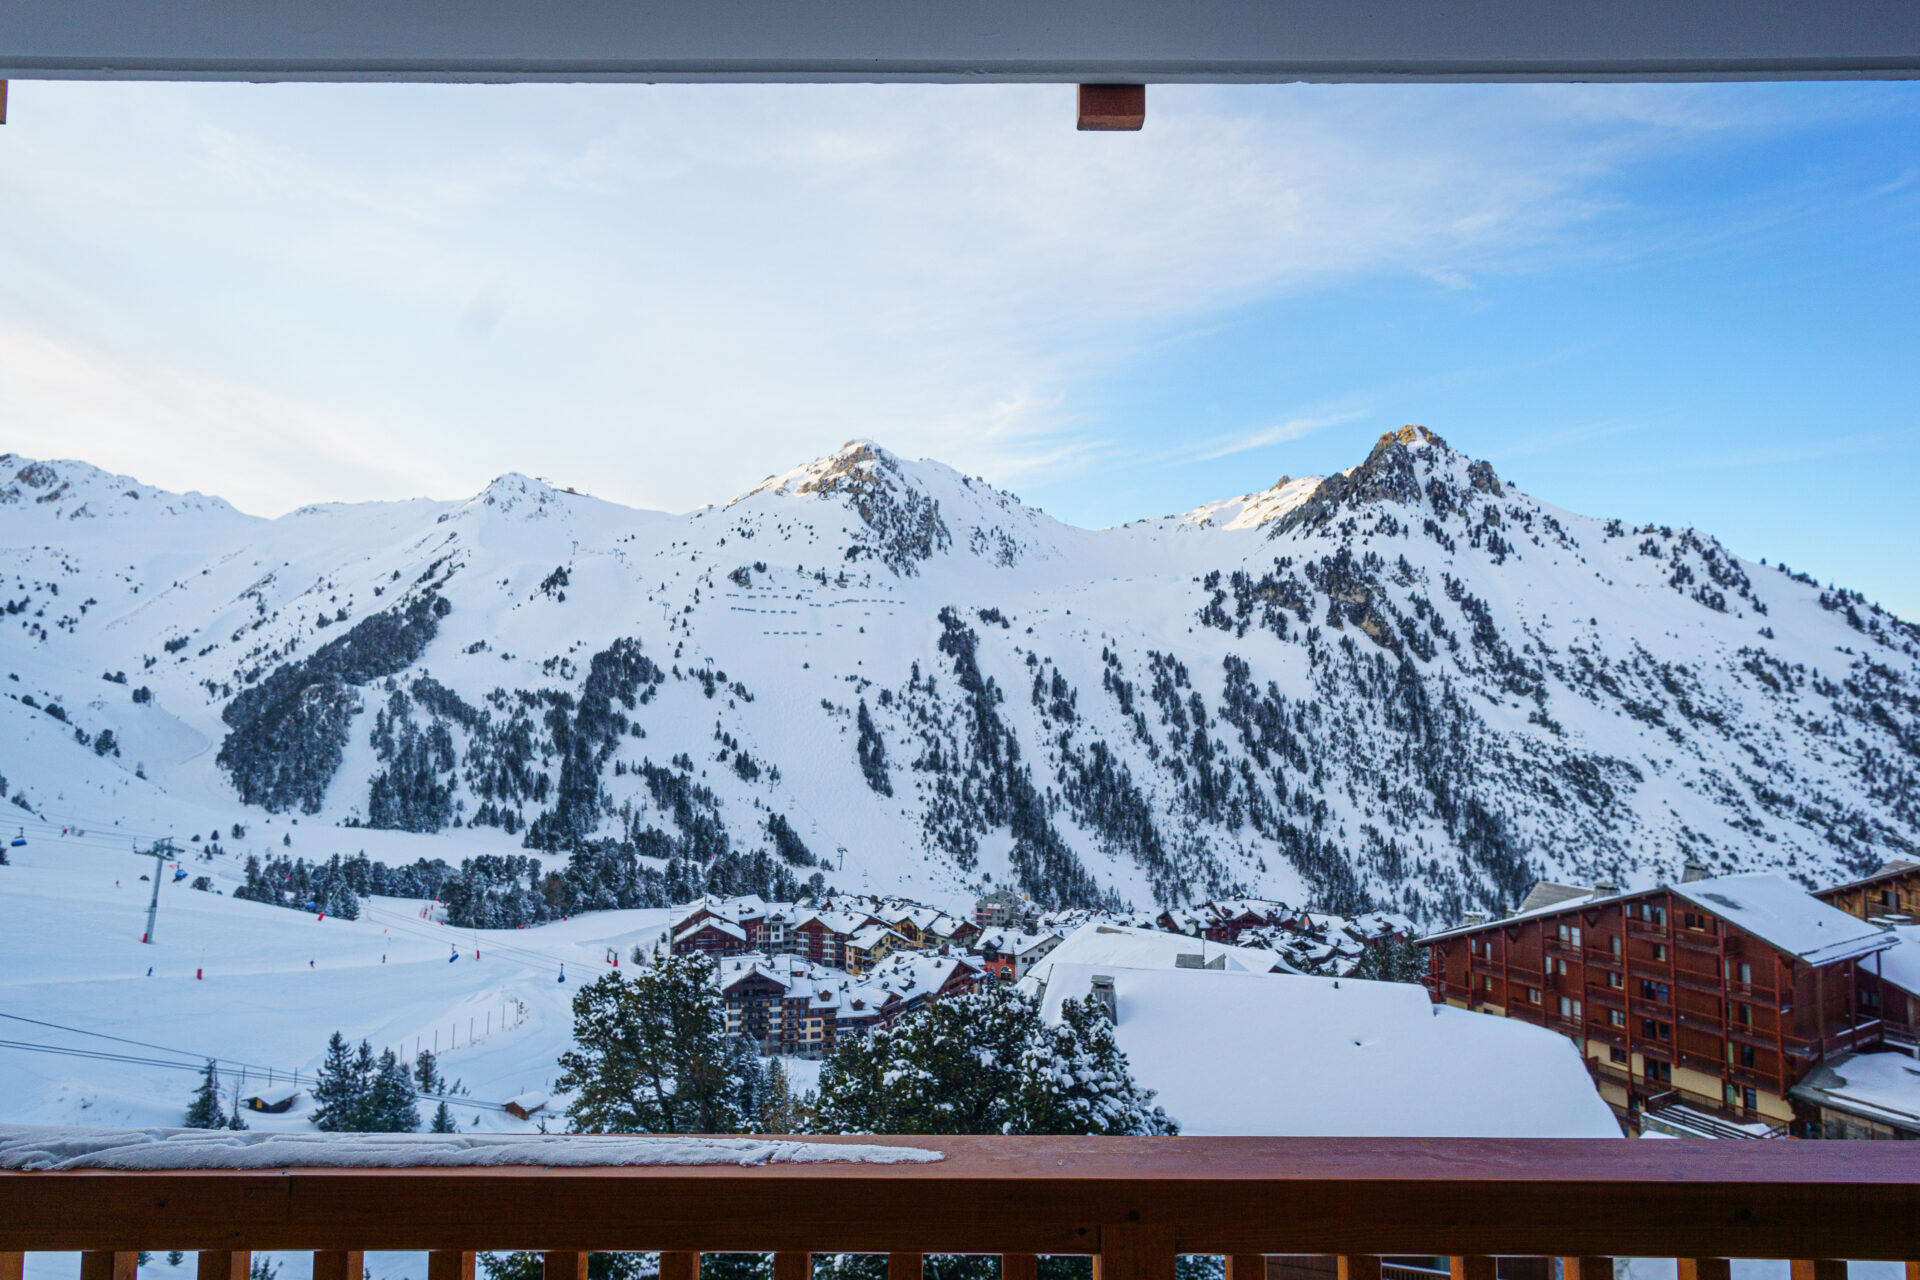 Perfect snowy mountain tops in Les Arcs, France, ecofriendly ski destination